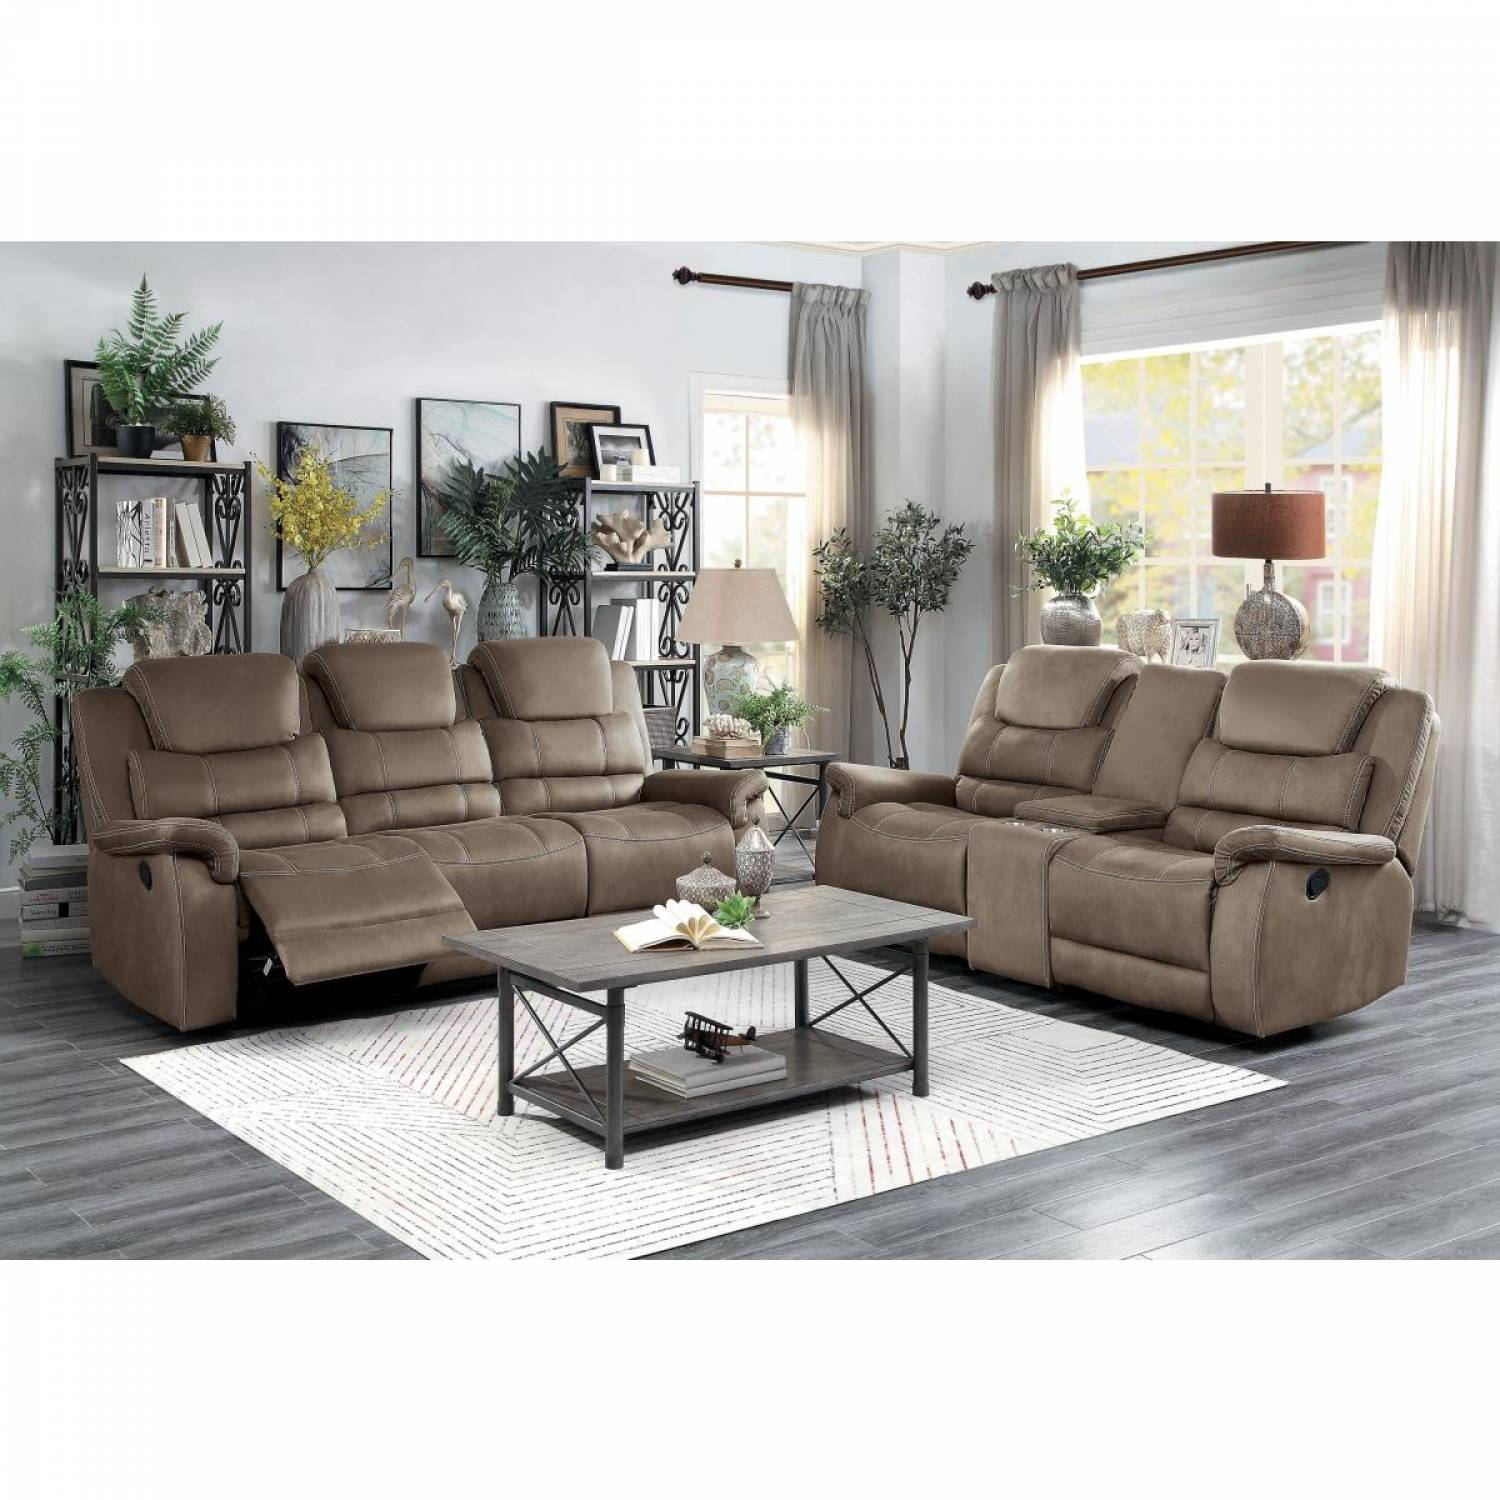 Picture of: 9848br 2 3 Double Reclining Sofa And Love Seat With Drop Down Cup Holders And Receptacles Shola